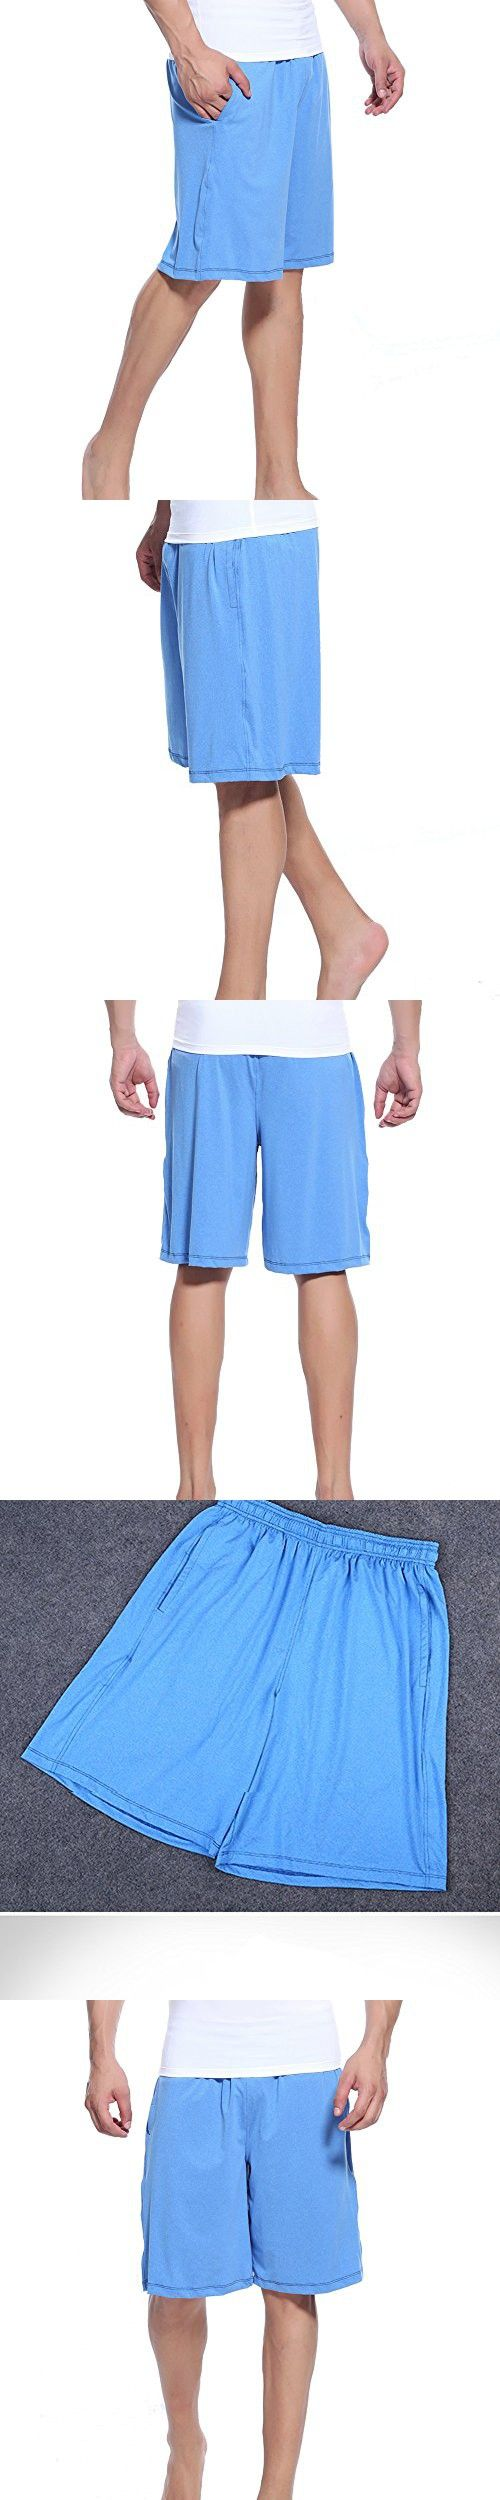 Hopeforth Running Shorts for Men Basketball Athletic Workout Shorts with Pockets Fast Dry(Blue,2XL)